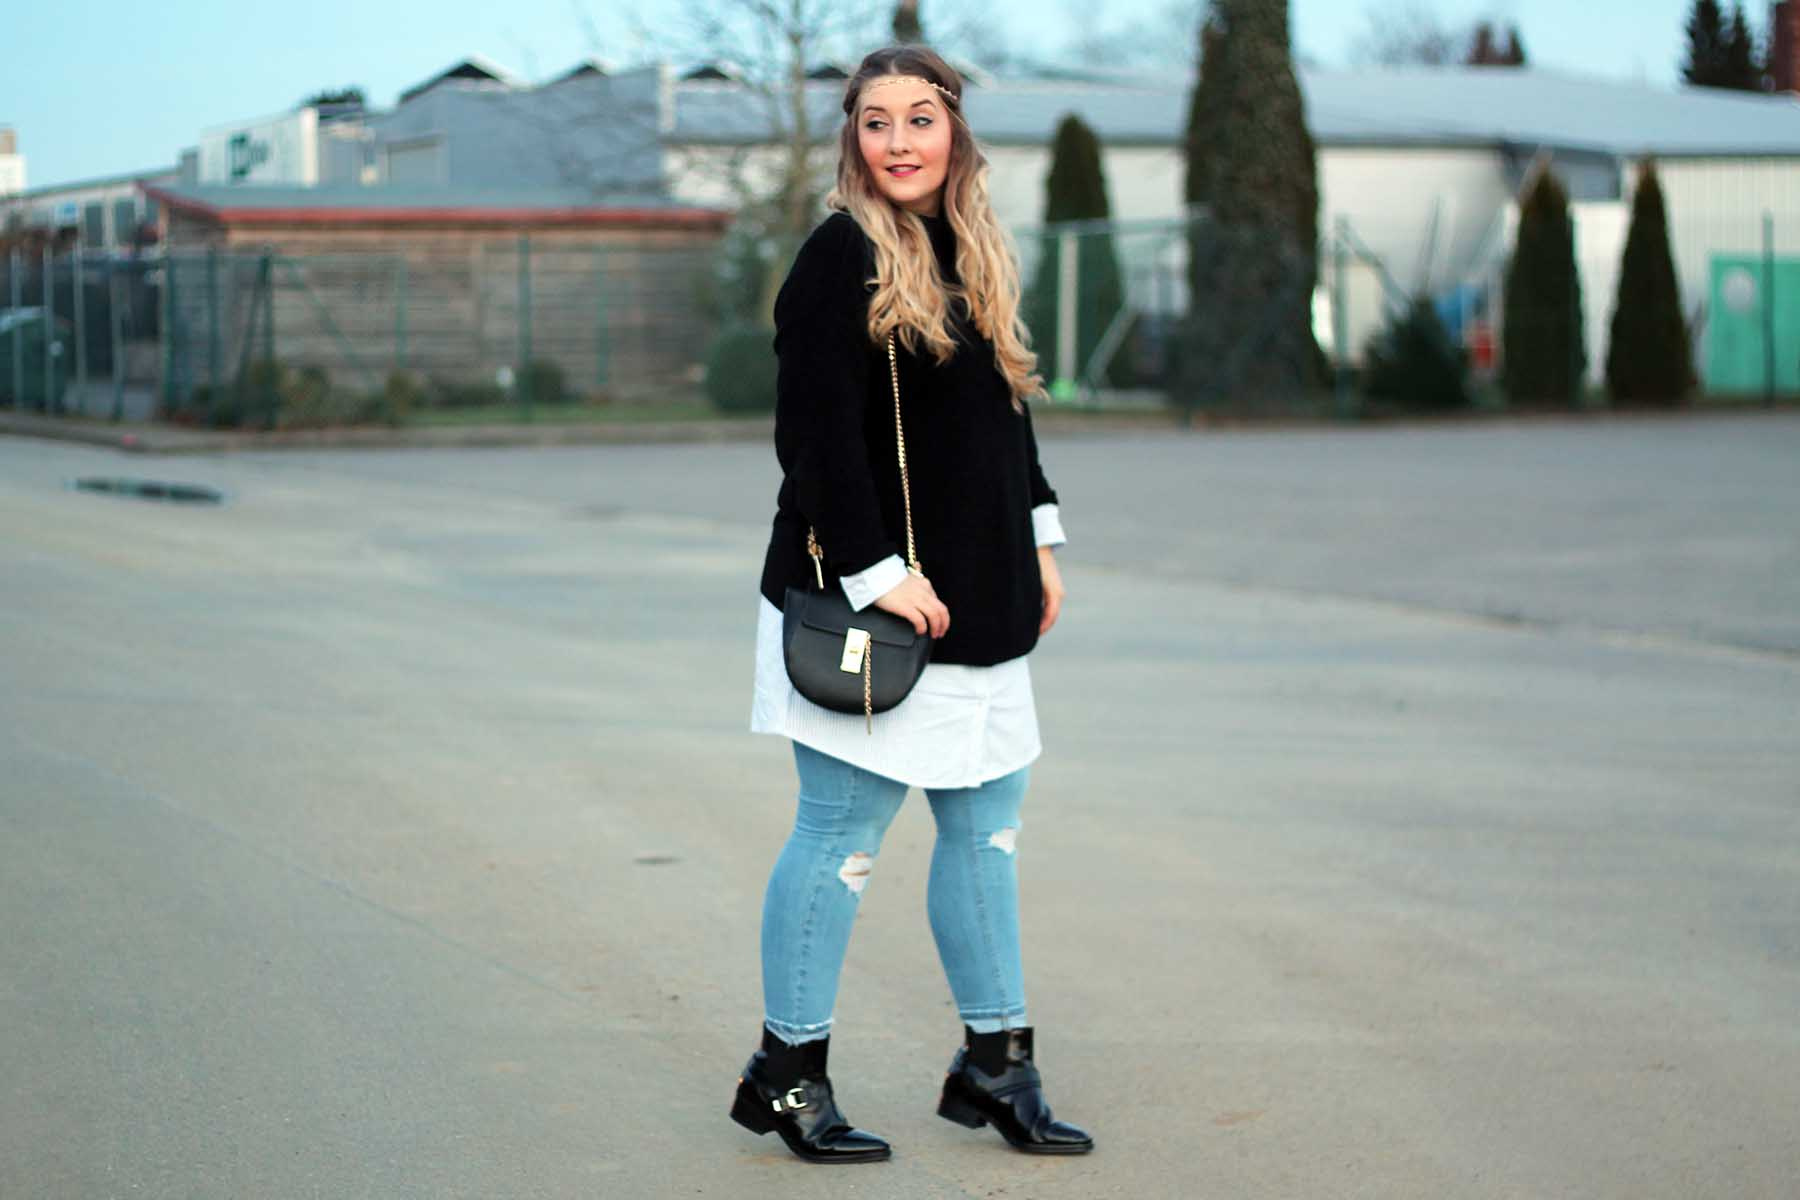 modeblog-fashionblog-outift-style-jeans-hemd-pullover-stiefeletten